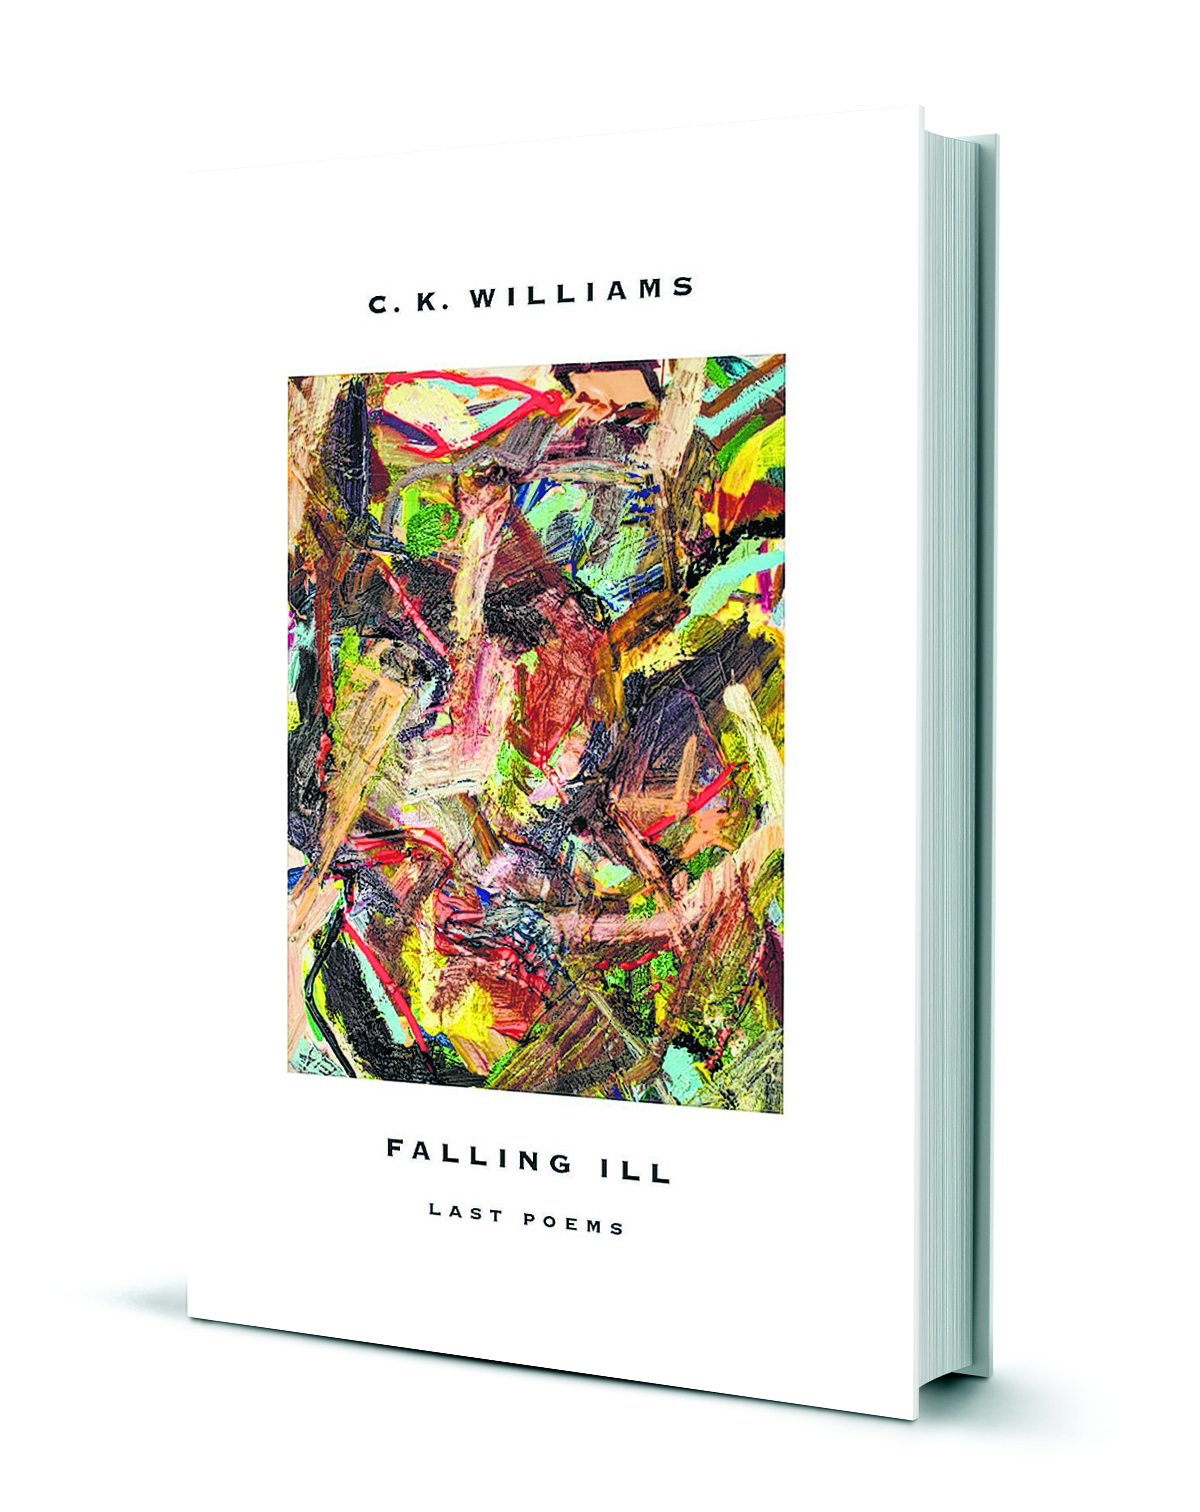 Poetry collections tackle death, loss and memory